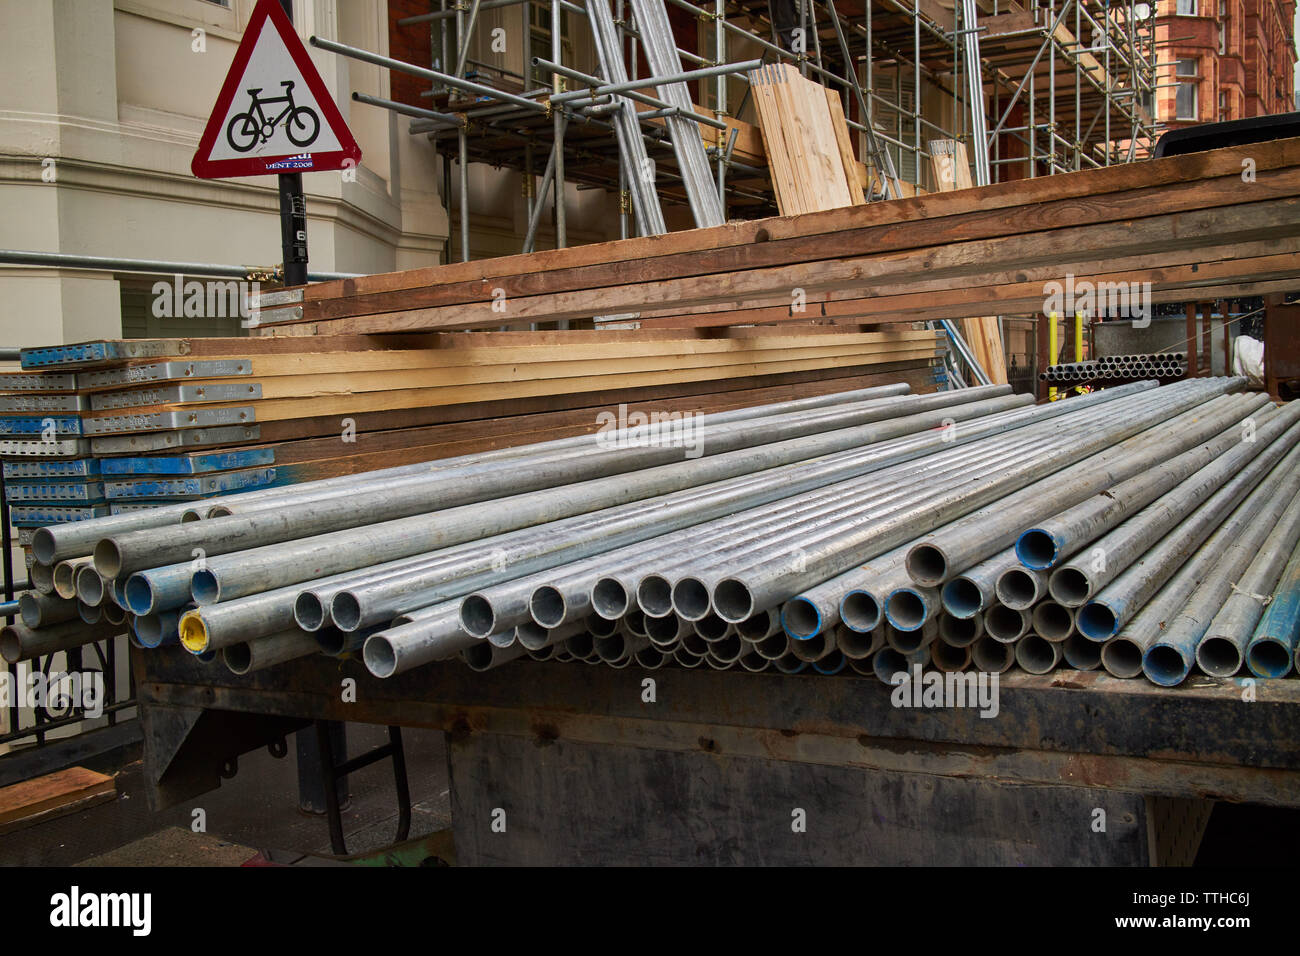 Professional scaffolding rods on the back of a work lorry. - Stock Image